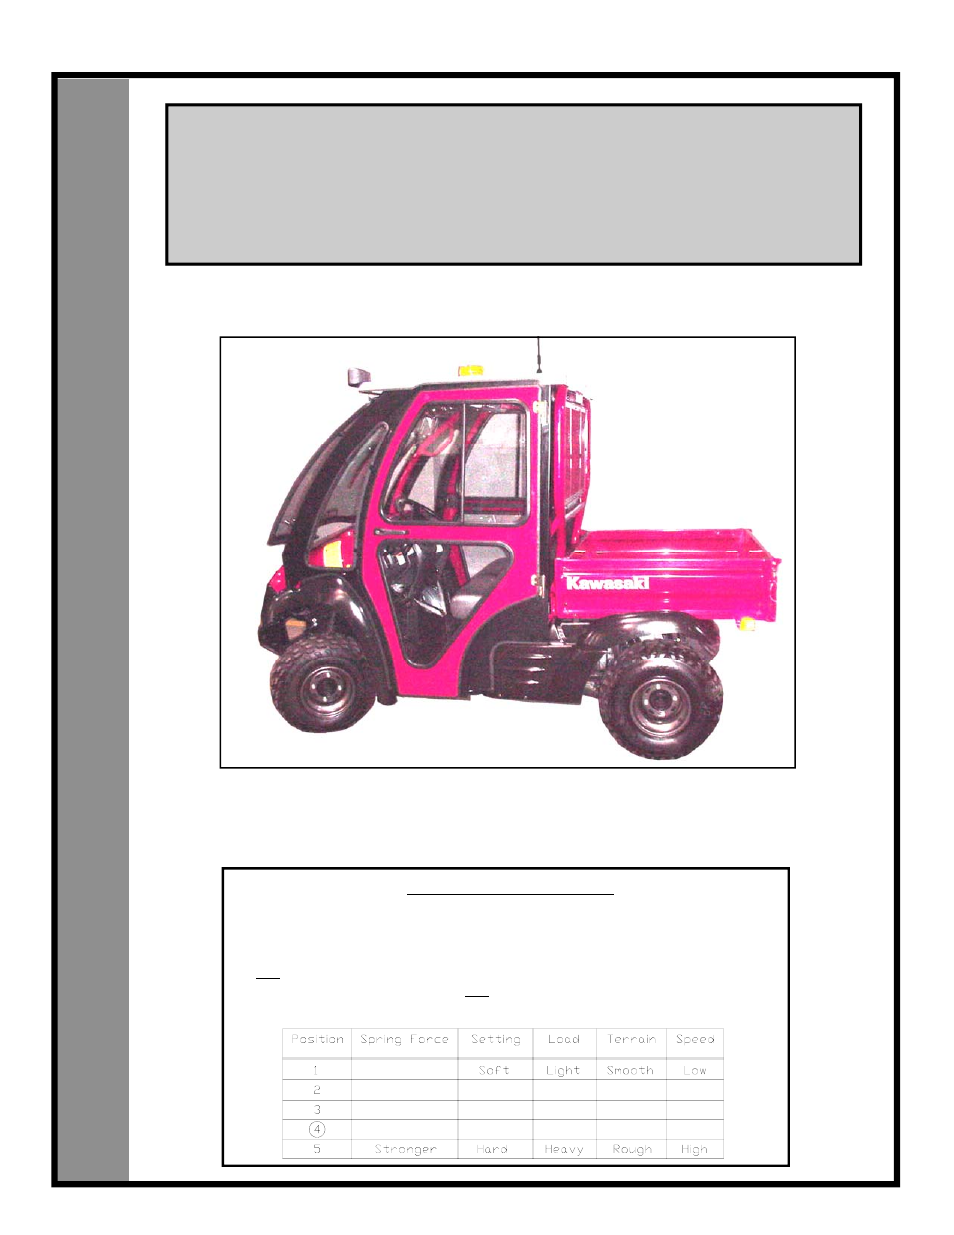 kawasaki mule 600 series user manual 9 pages. Black Bedroom Furniture Sets. Home Design Ideas